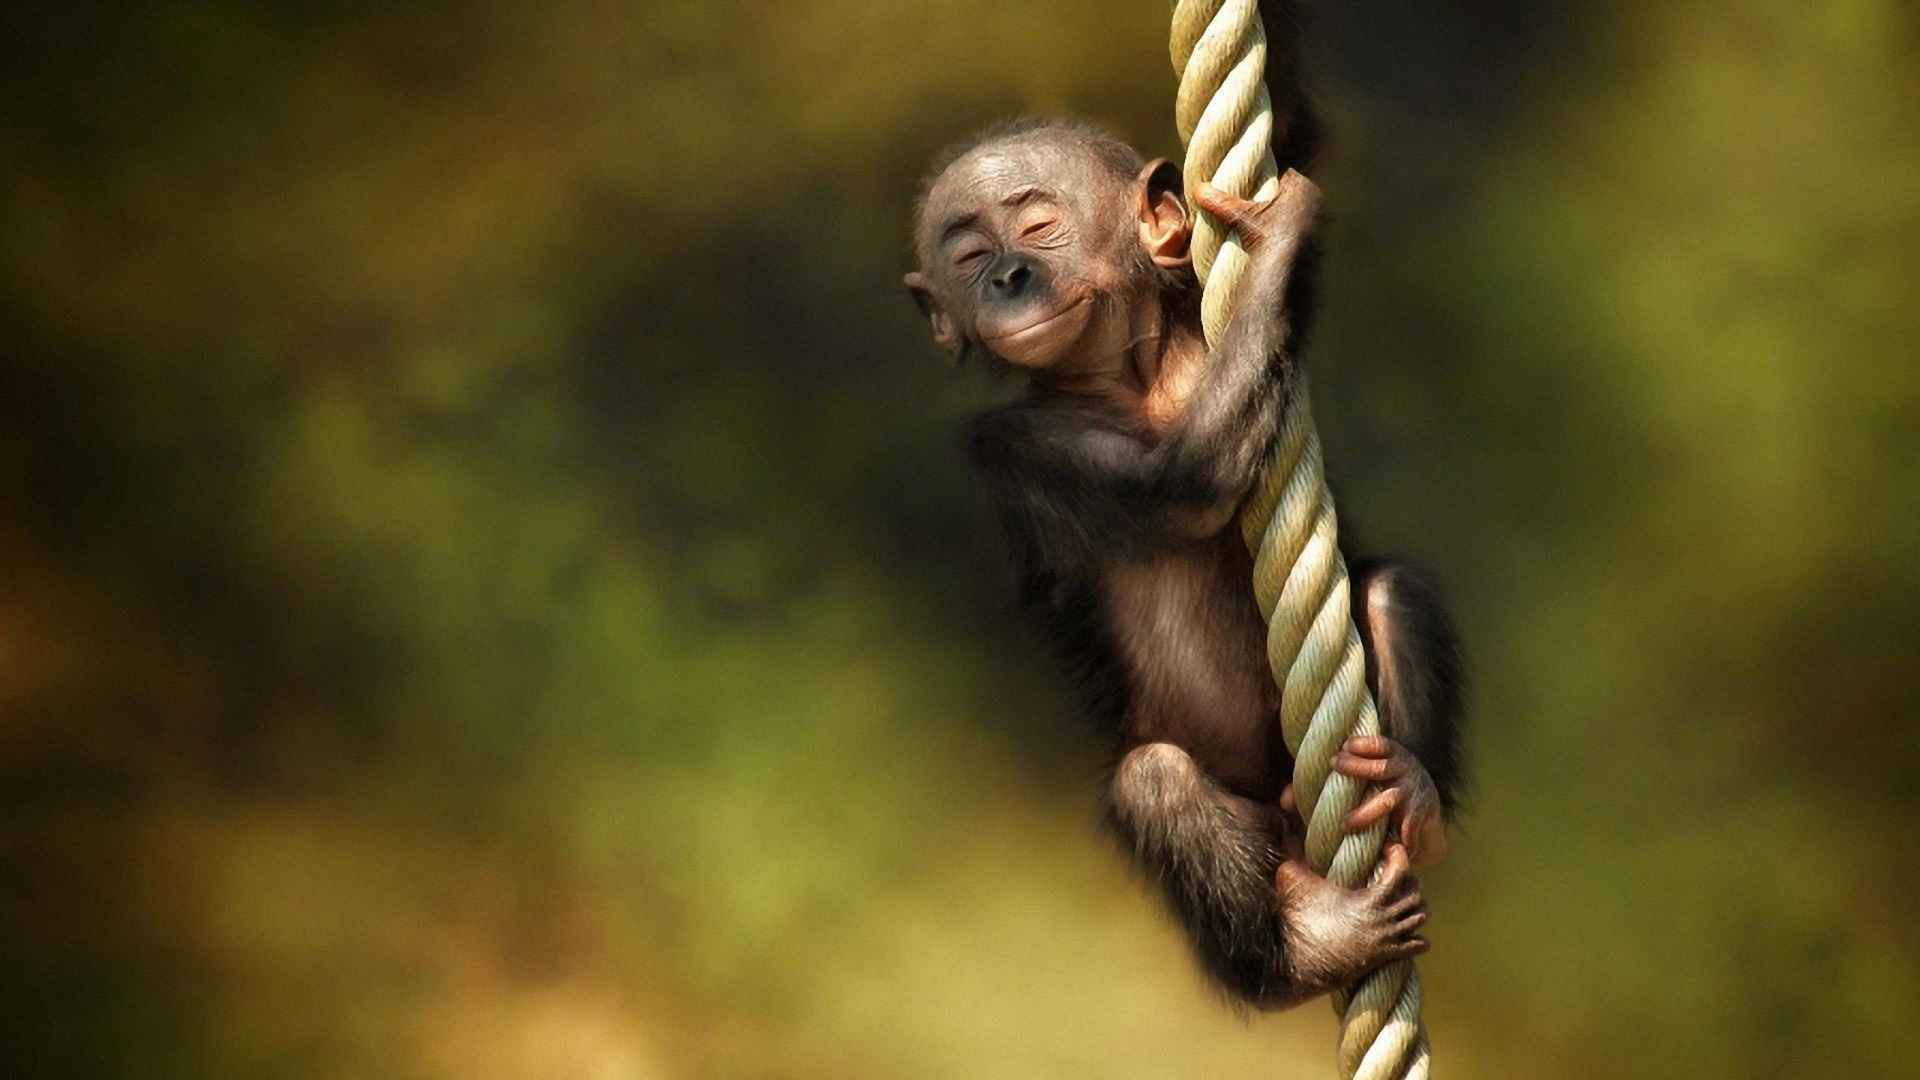 Full HD 1080p Monkey Wallpapers HD, Desktop Backgrounds 1920x1080